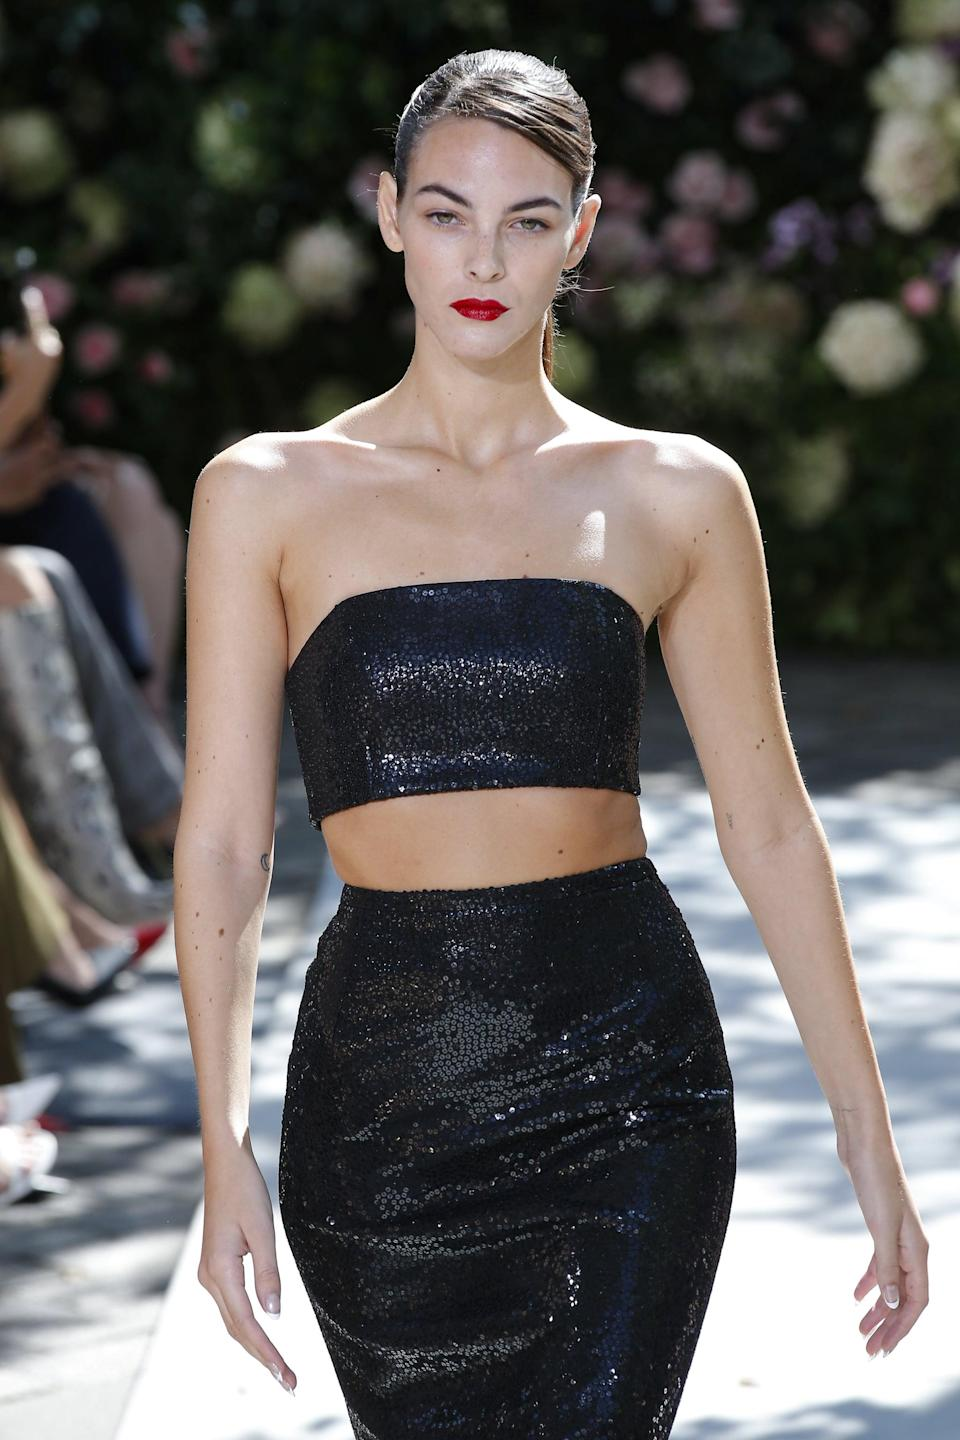 <p>We wouldn't be surprised to see Lori wearing this on one of her nights out with Michael B. Jordan. With the skin reveal and the tube top silhoeutte, it is sultry and extremely elegant, not unline many of the model's date-night outfits.</p>